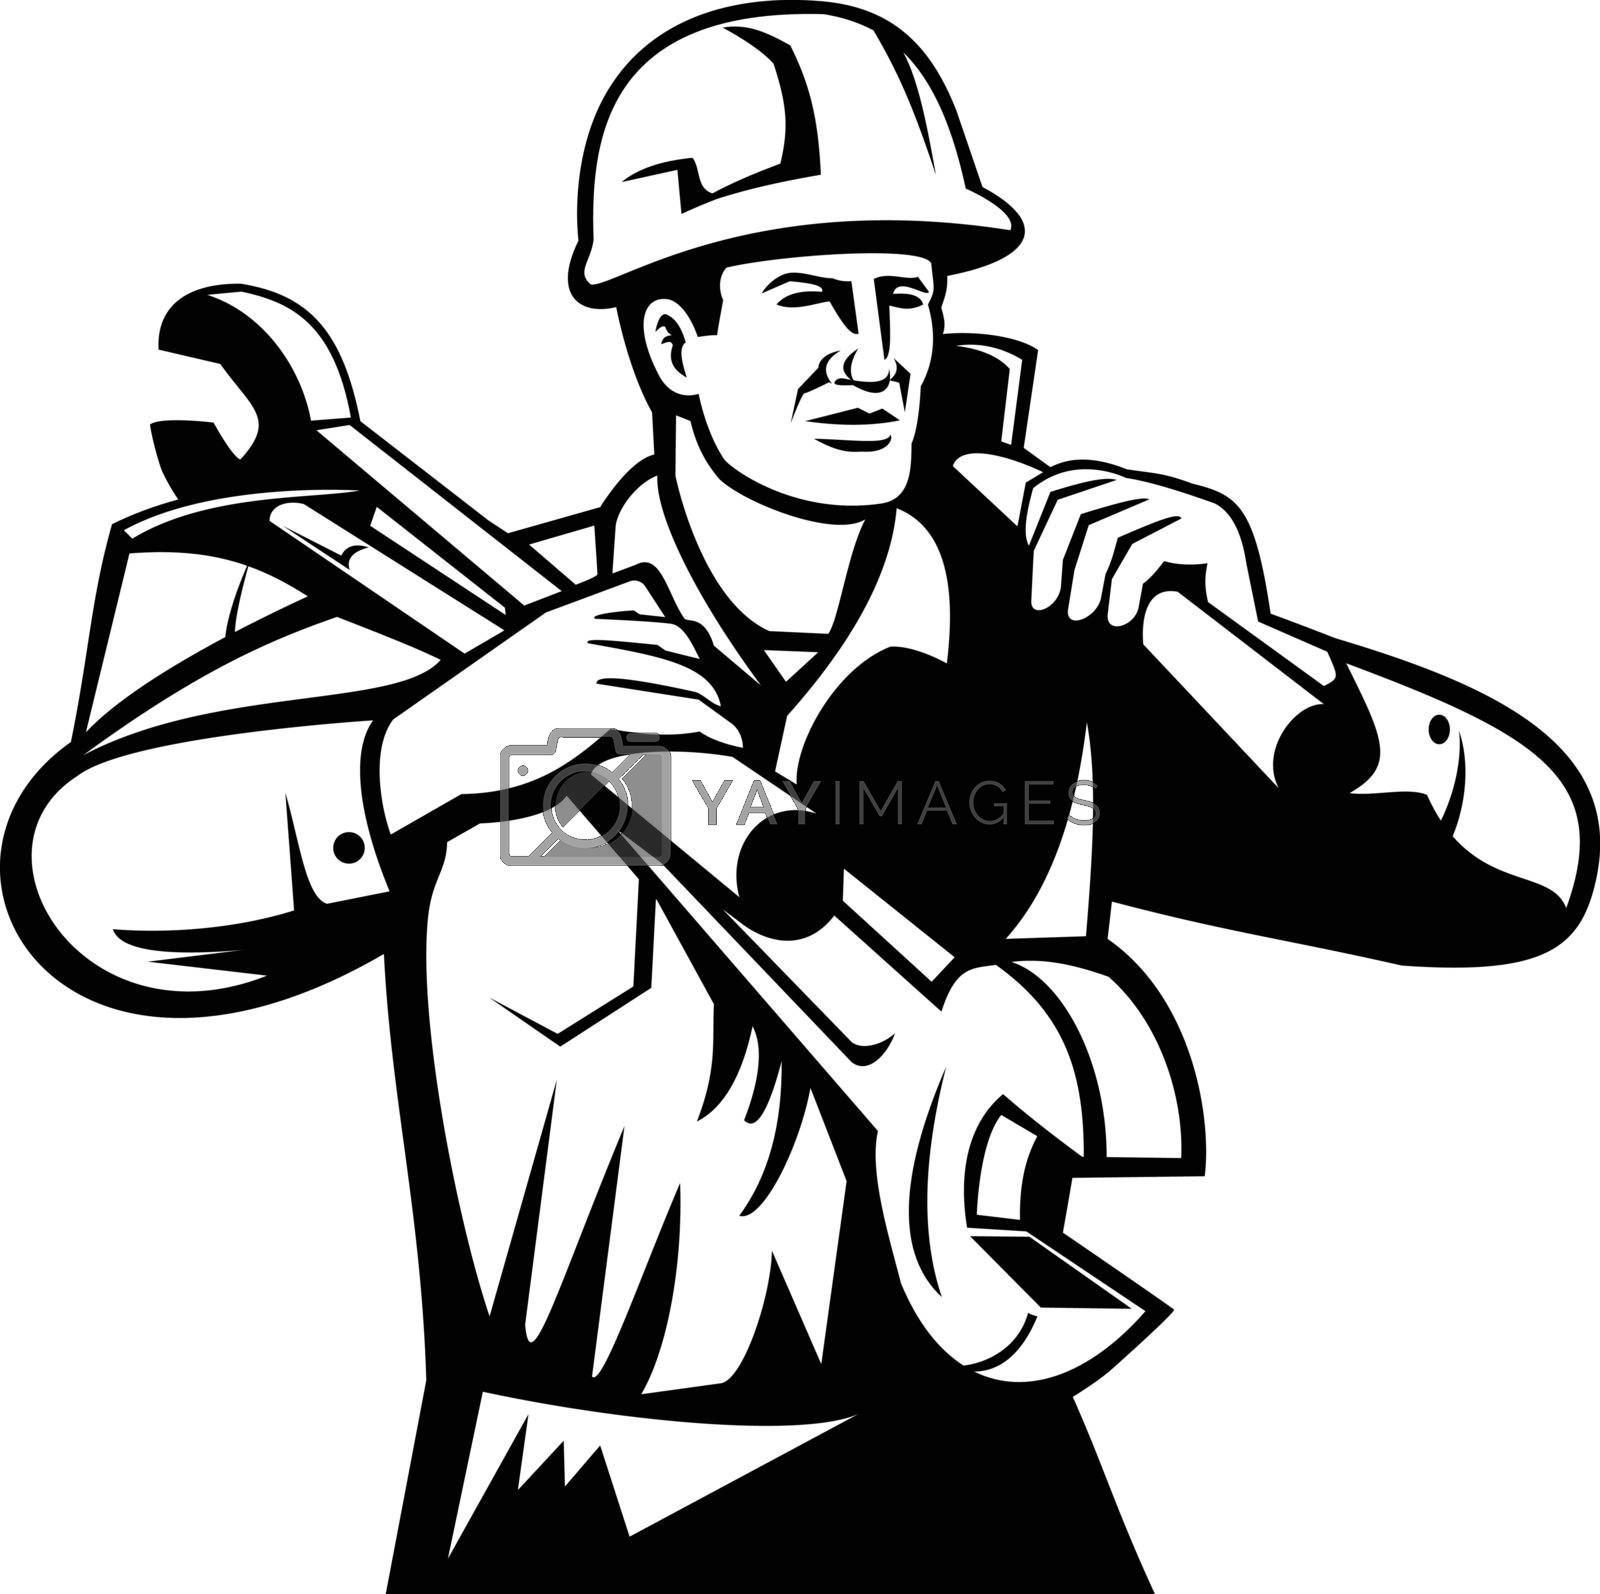 Black and white illustration of a handyman, repairman, or  builder wearing hard hat carrying spanner wrench and spade viewed from front on isolated background done in retro style.